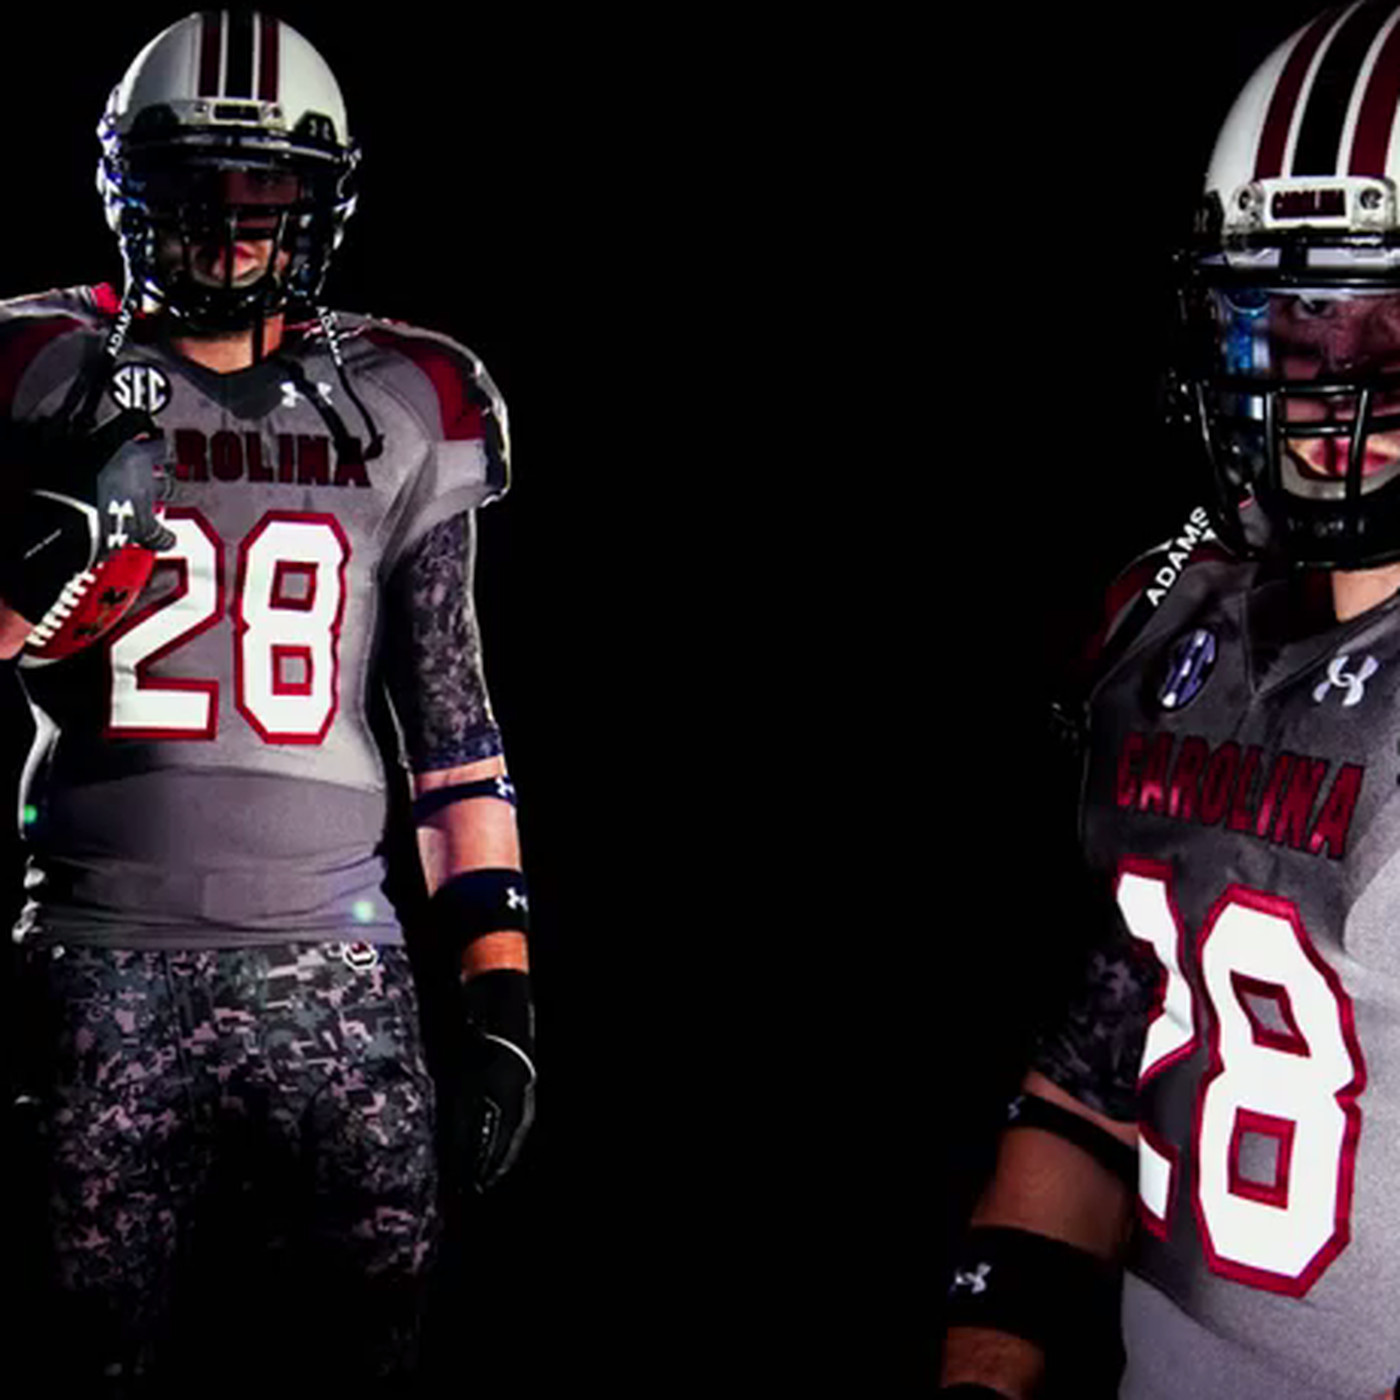 731e9b16417 South Carolina wearing camouflage uniforms for LSU game - SBNation.com